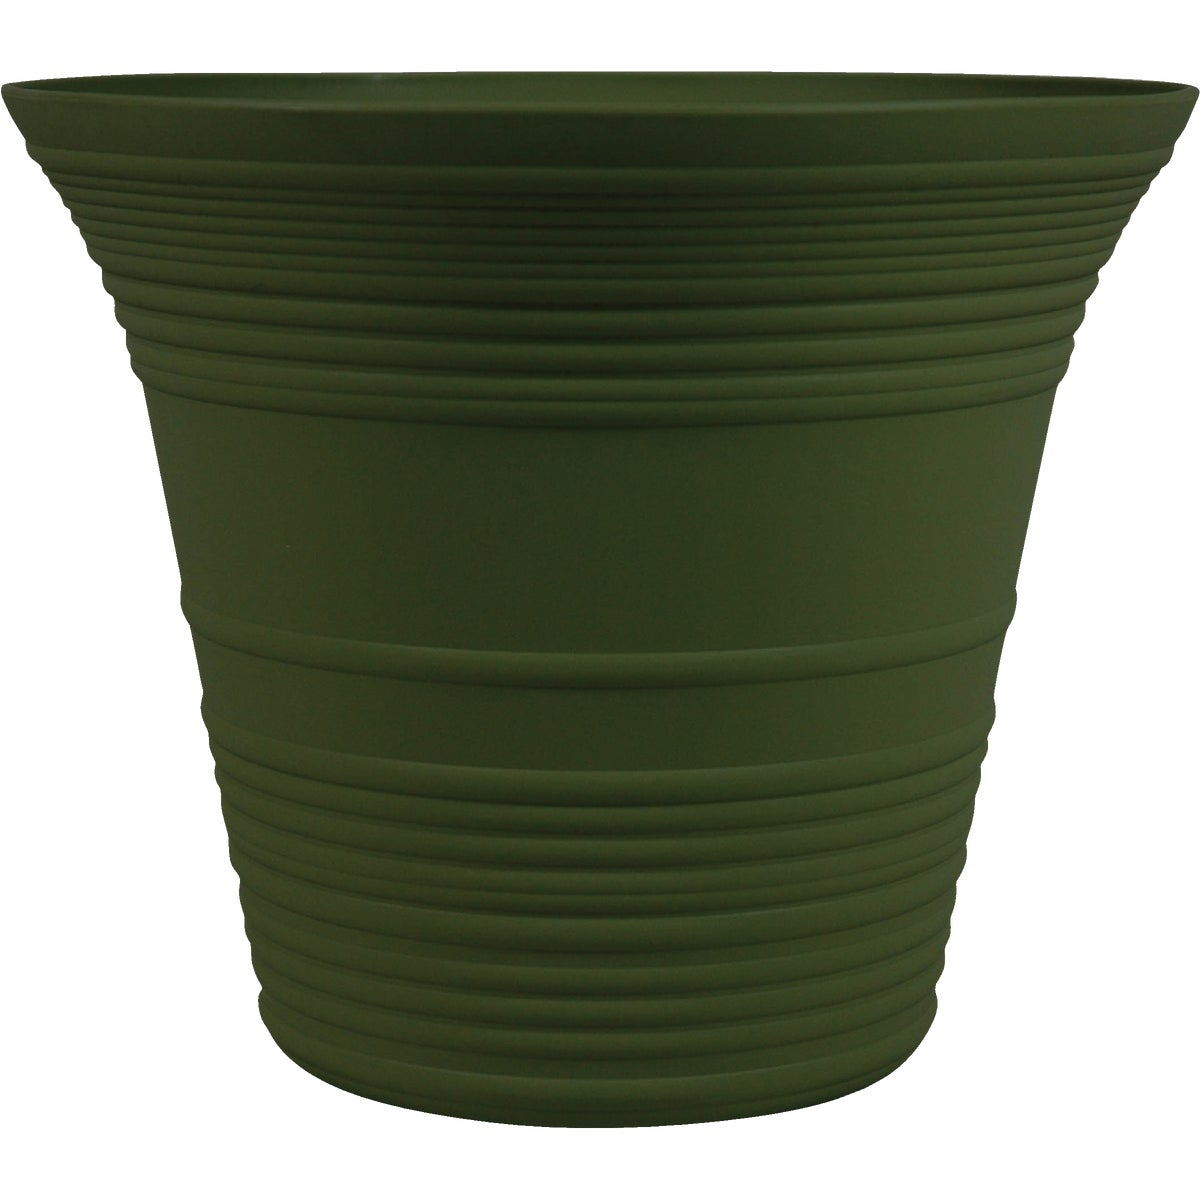 "7"" GREEN SEDONA PLNTER - SEA07001BB3 by Myers Industries Inc"